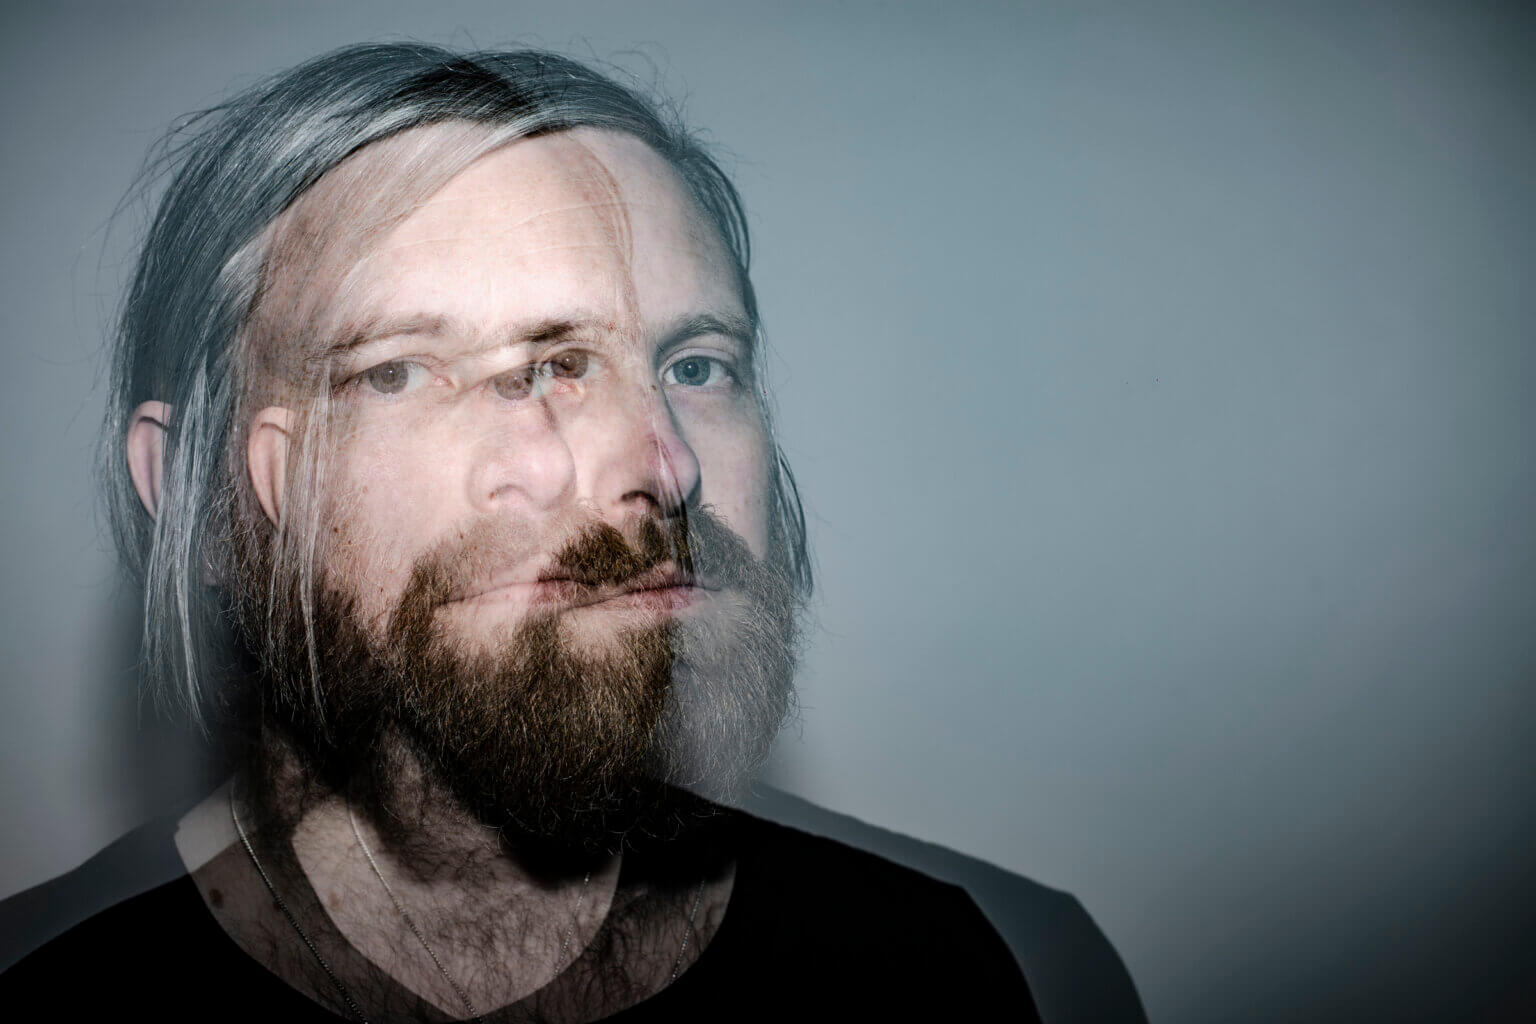 Blanck Mass AKA: Benjamin John Power, will release his new album, In Ferneaux, on February 26, via Sacred Bones. Along with the news